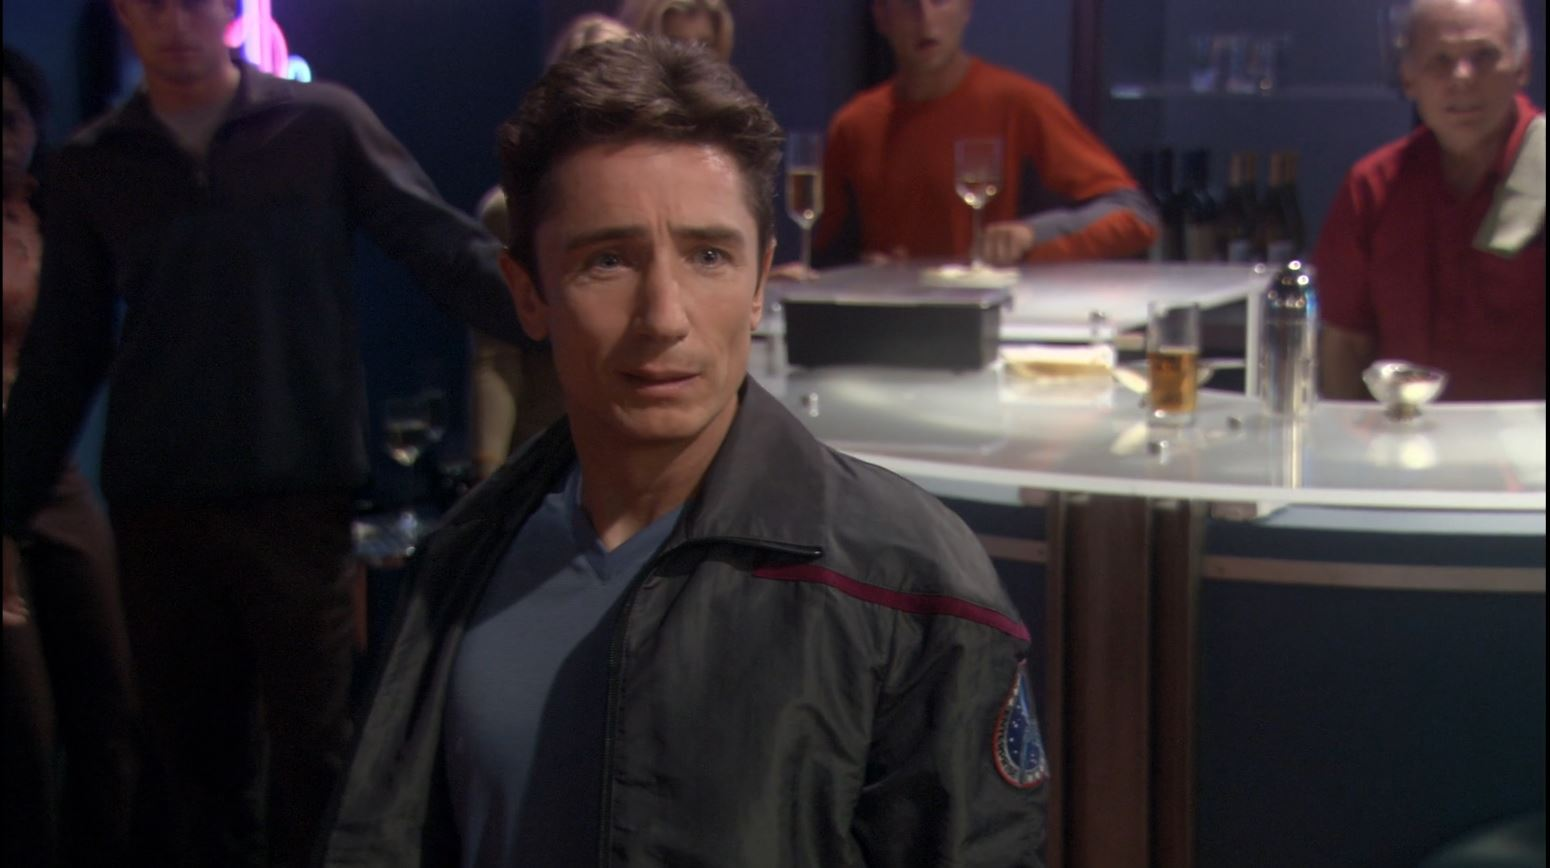 Enterprise season 4 Blu ray review - Malcolm Reed (Dominic Keating)